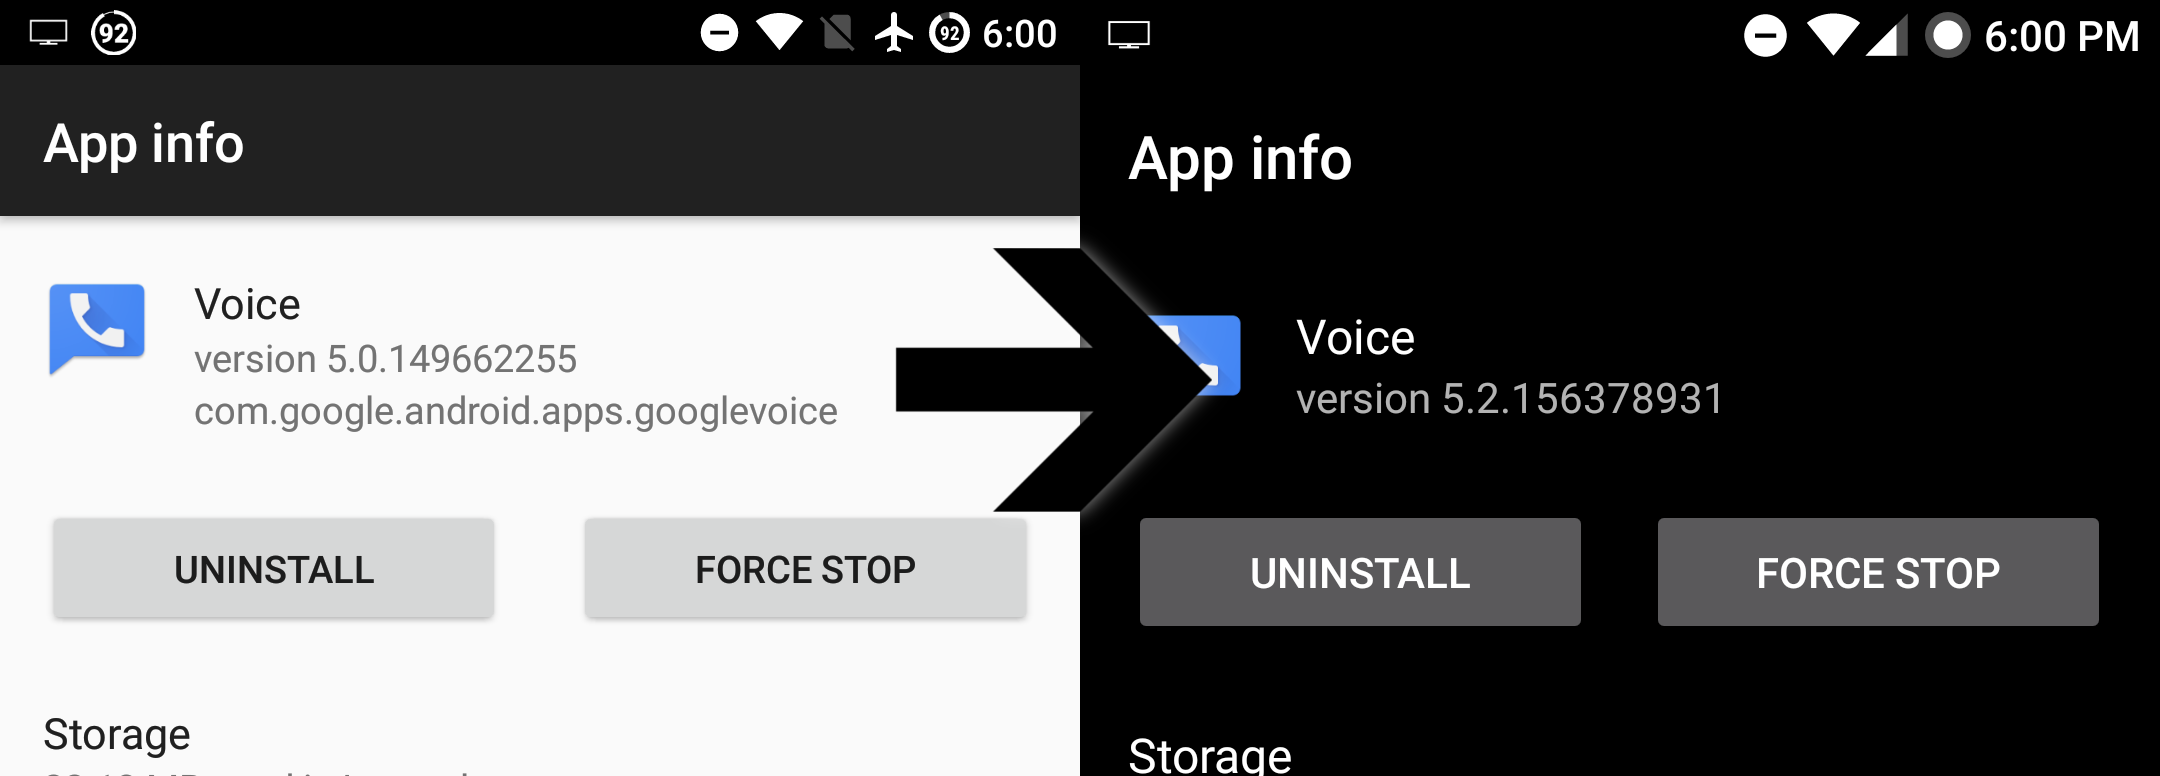 Google voice themes for android - It Seems The Last Few Months Were No Fluke And Google Is Committed To Keeping Voice Updated Now That It S Been Redesigned Out Of The Holo Era